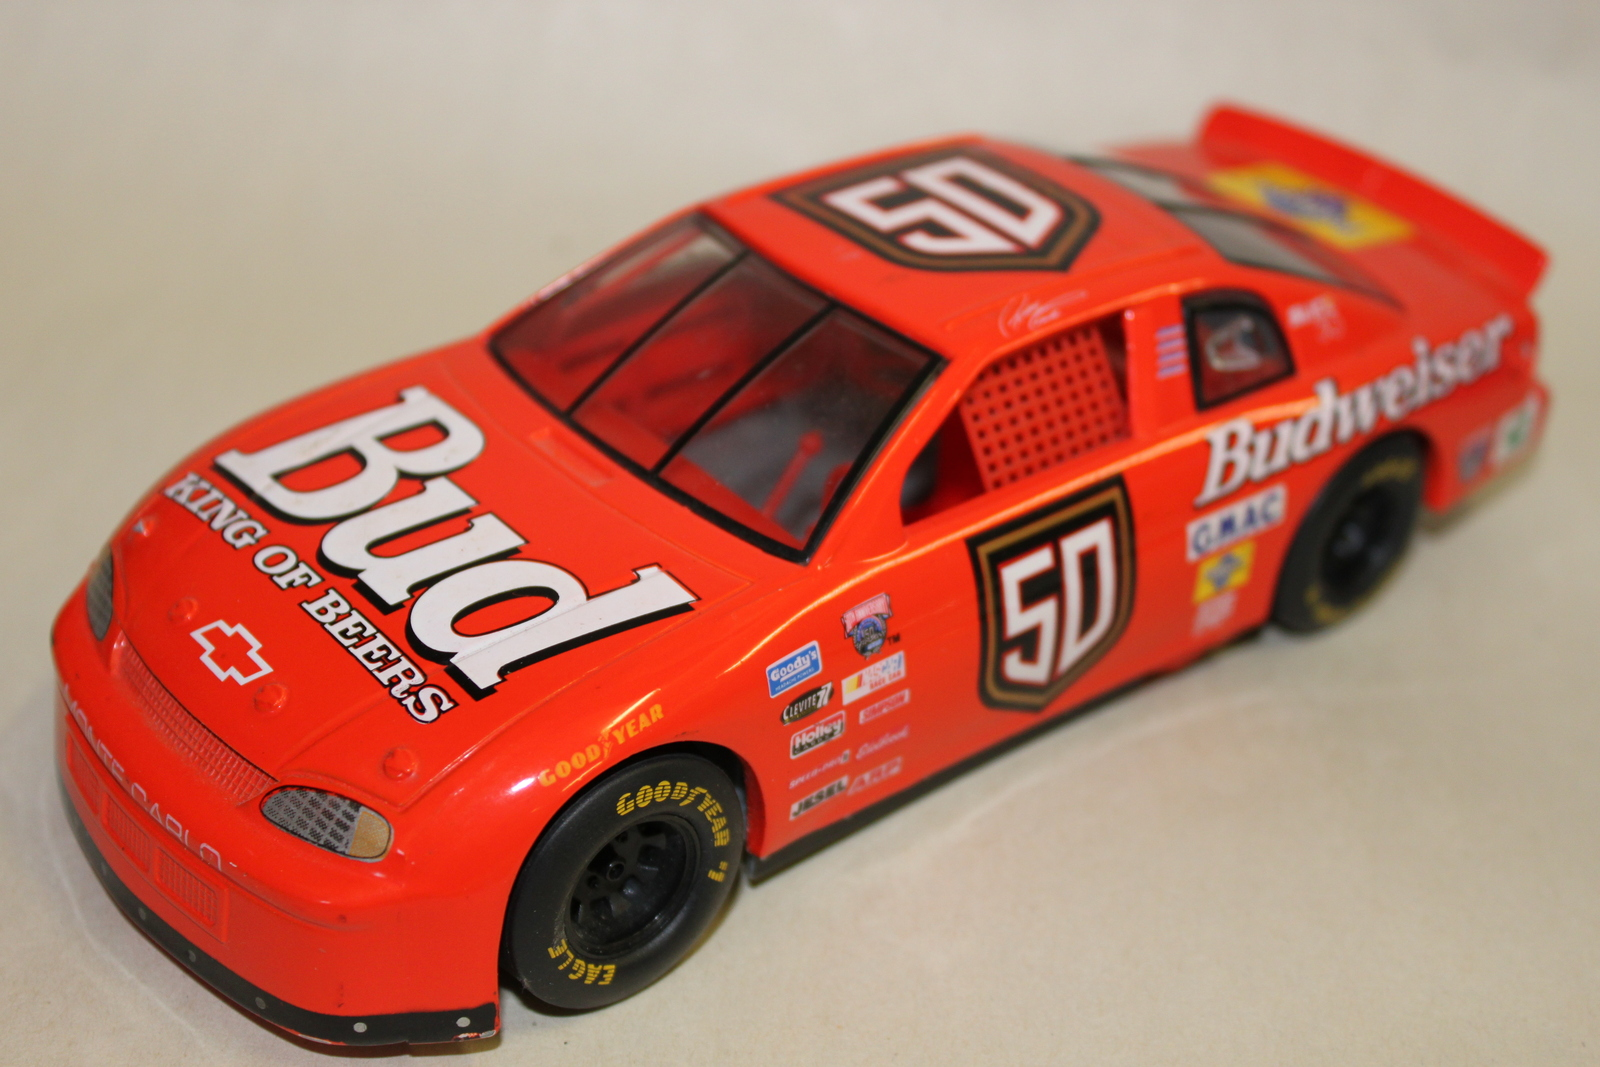 Bud 50 Budweiser King of Beers Red Model Car Monte Carolo